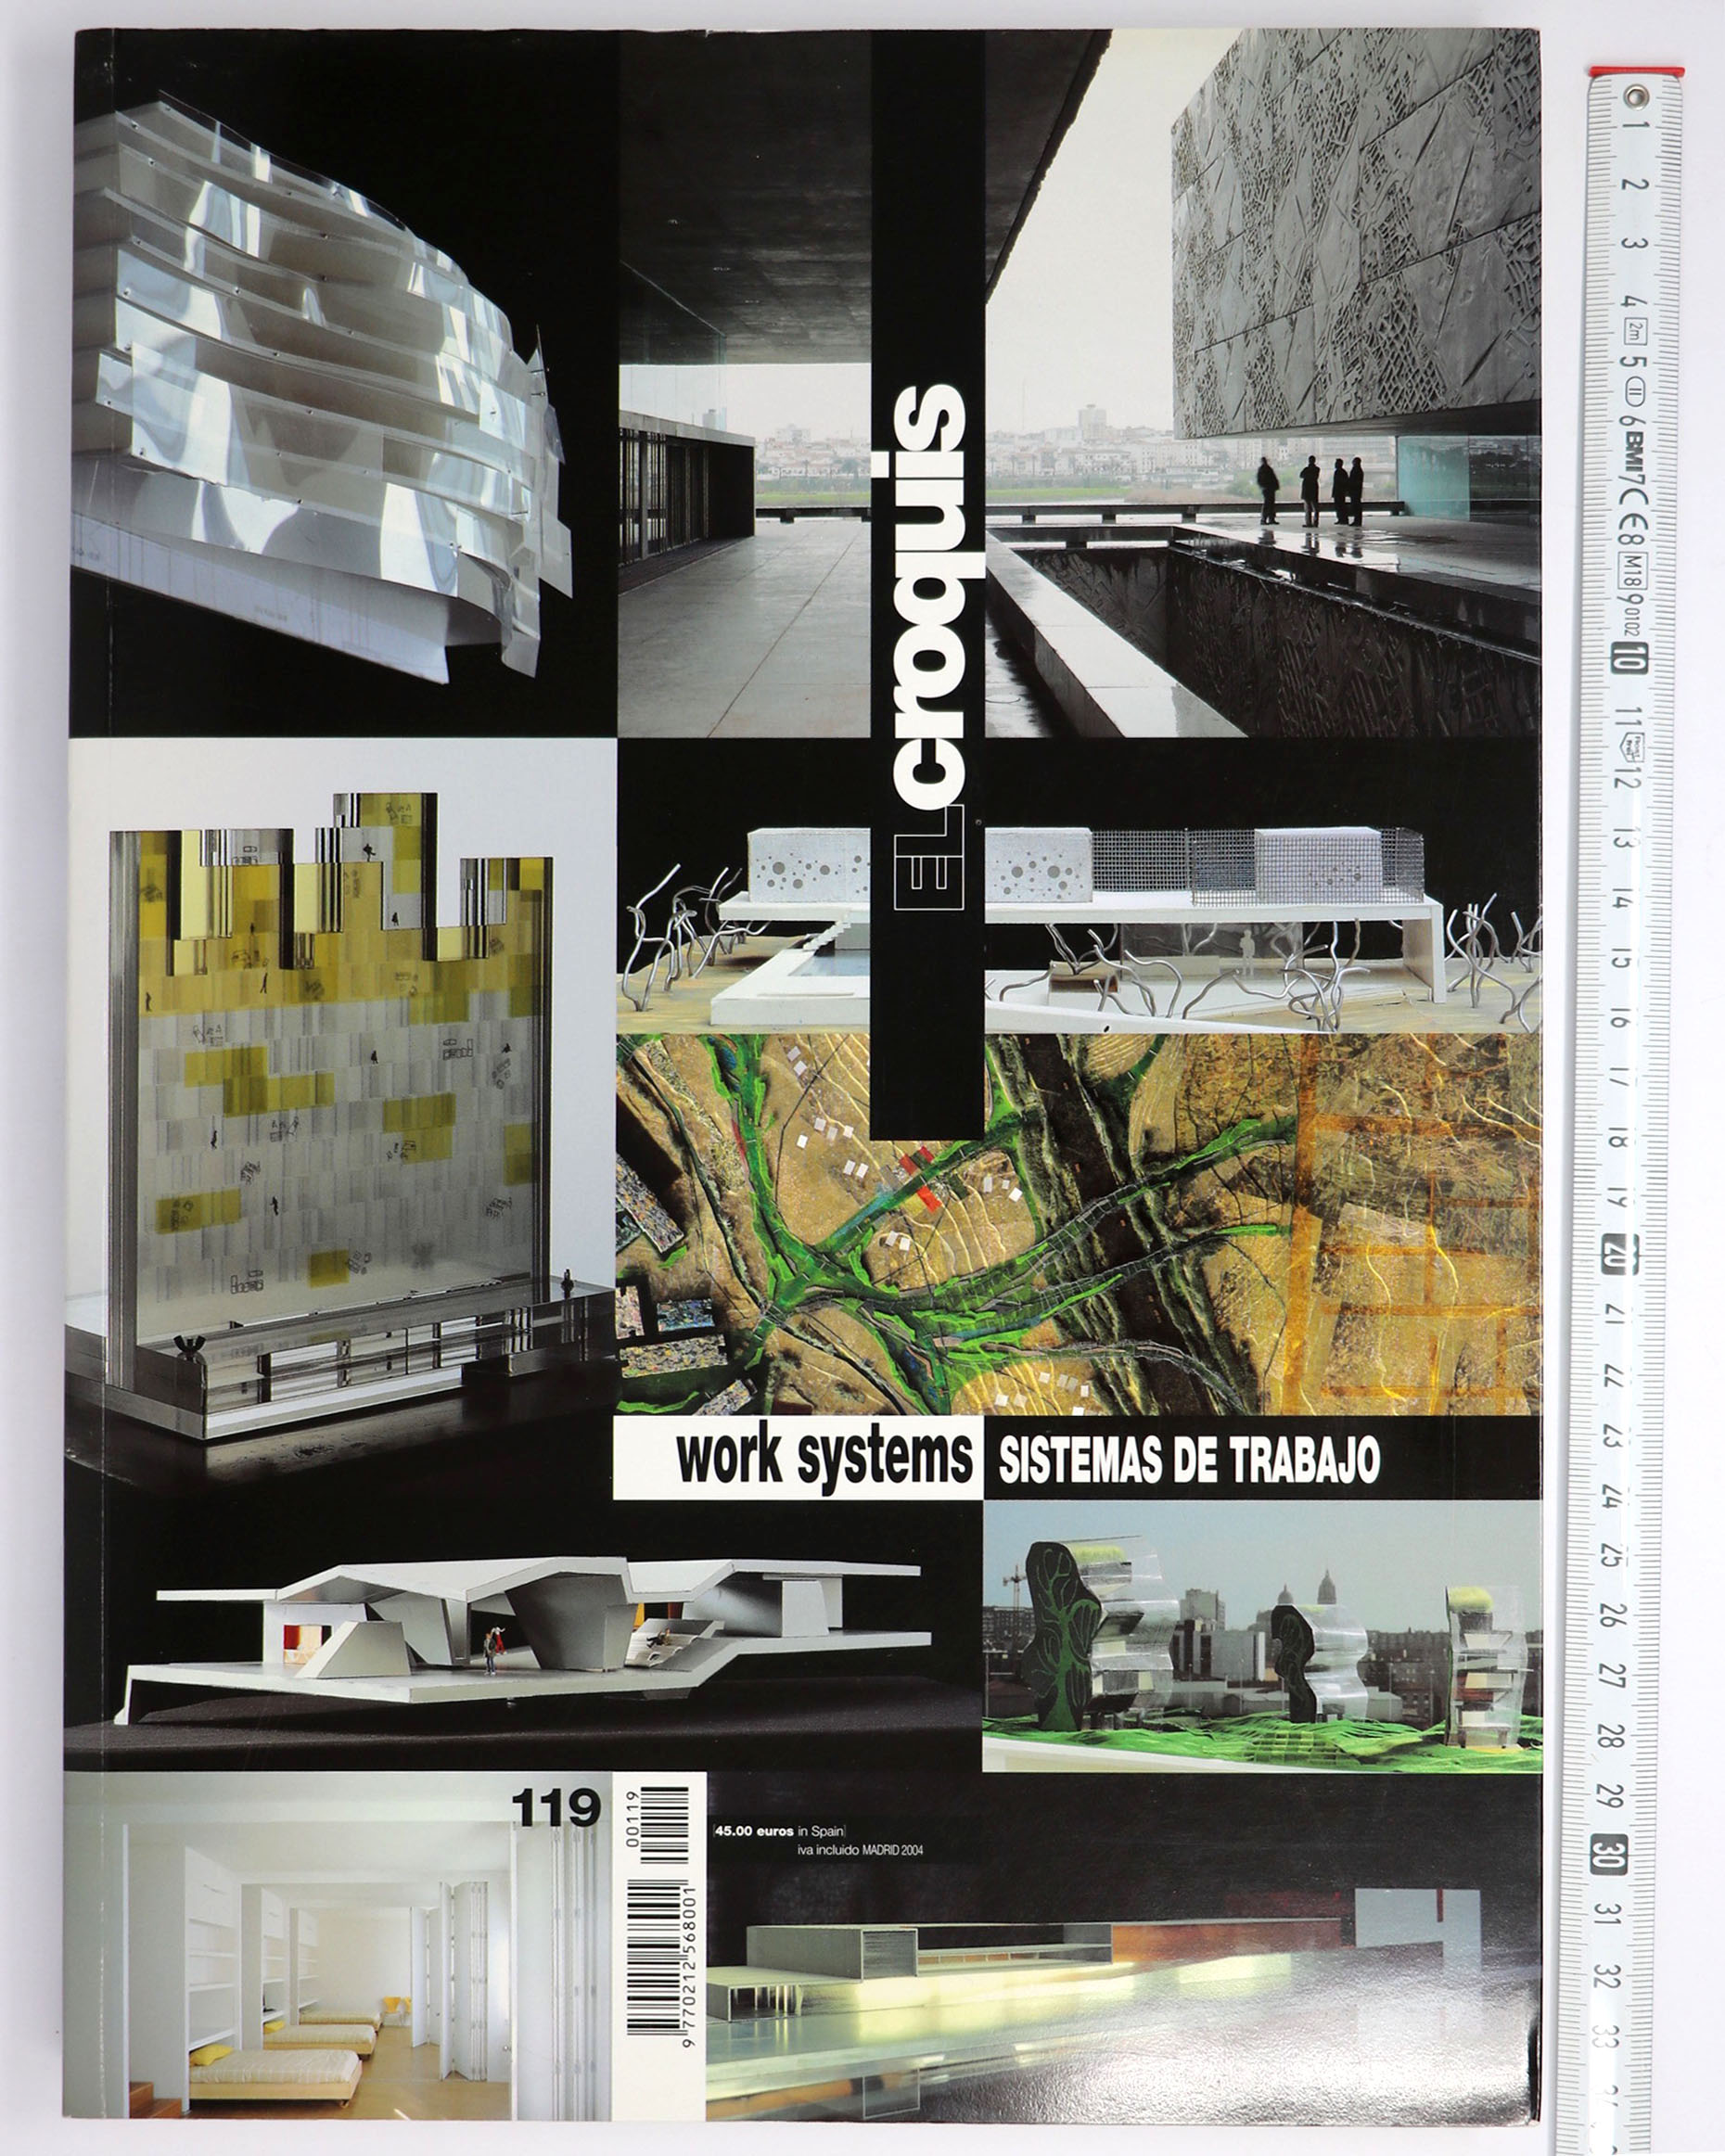 El Croquis エル・クロッキー 119 2004 1 Works Systems